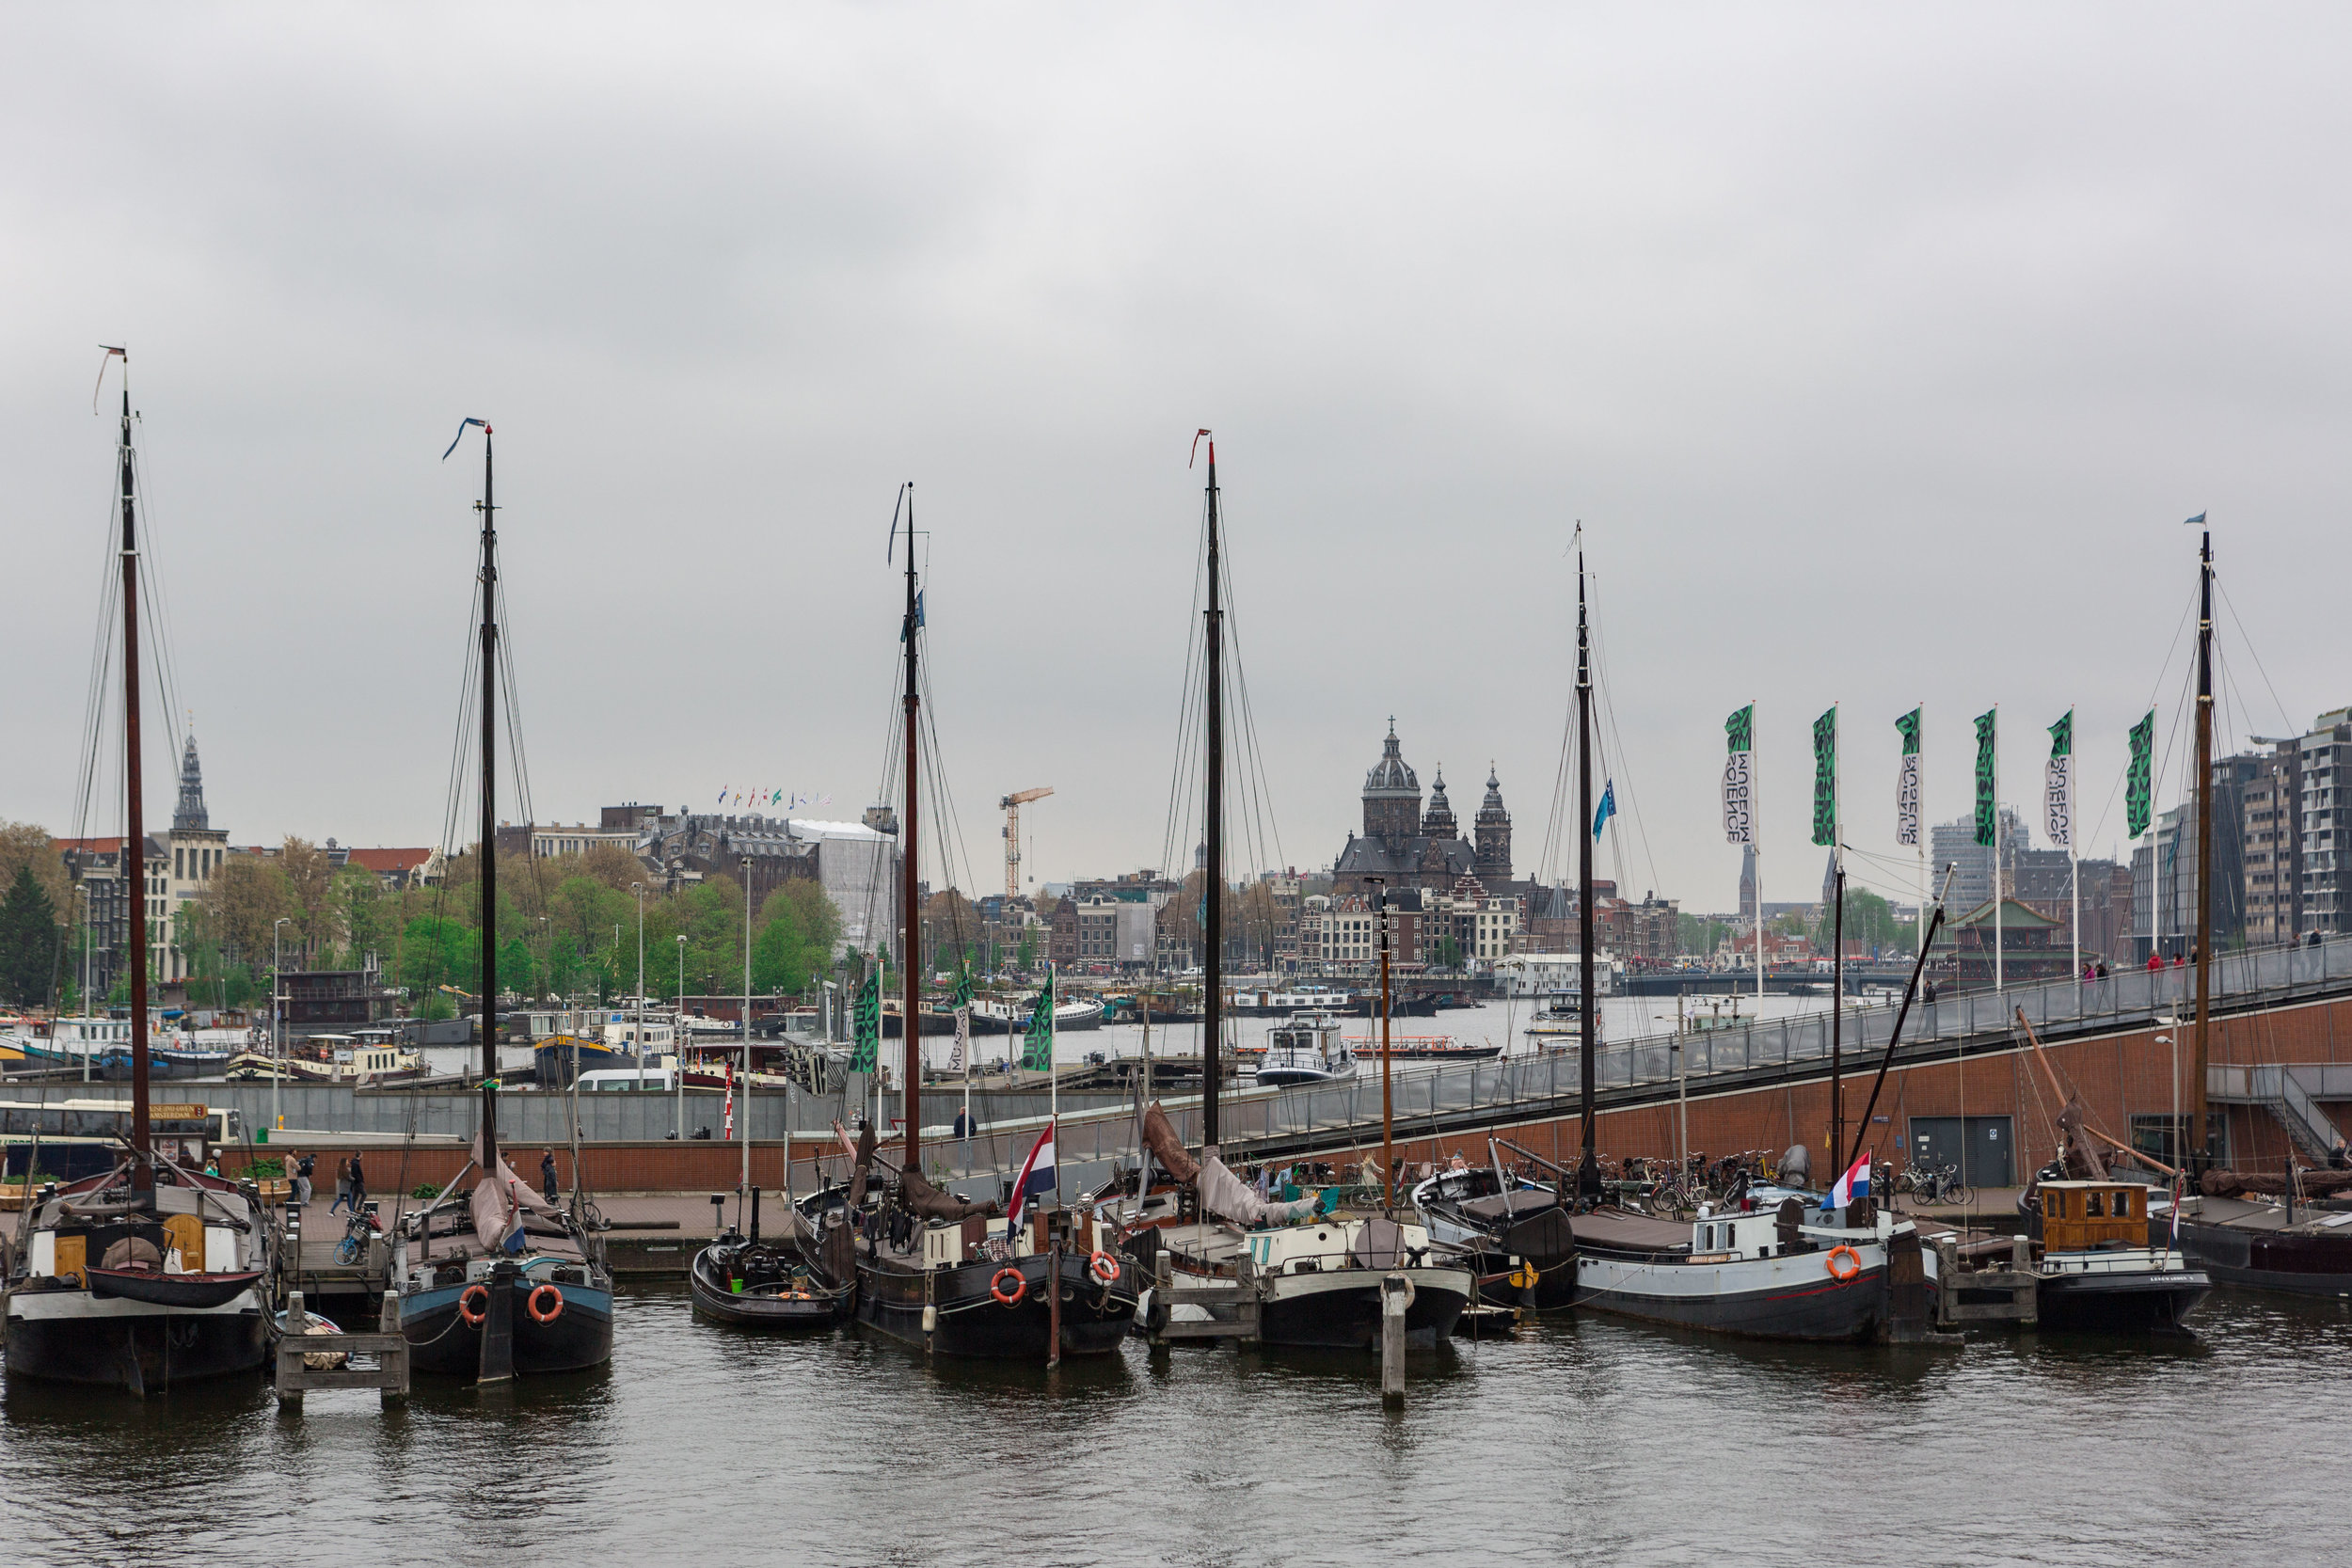 View from Amsterdam's Shipmuseum